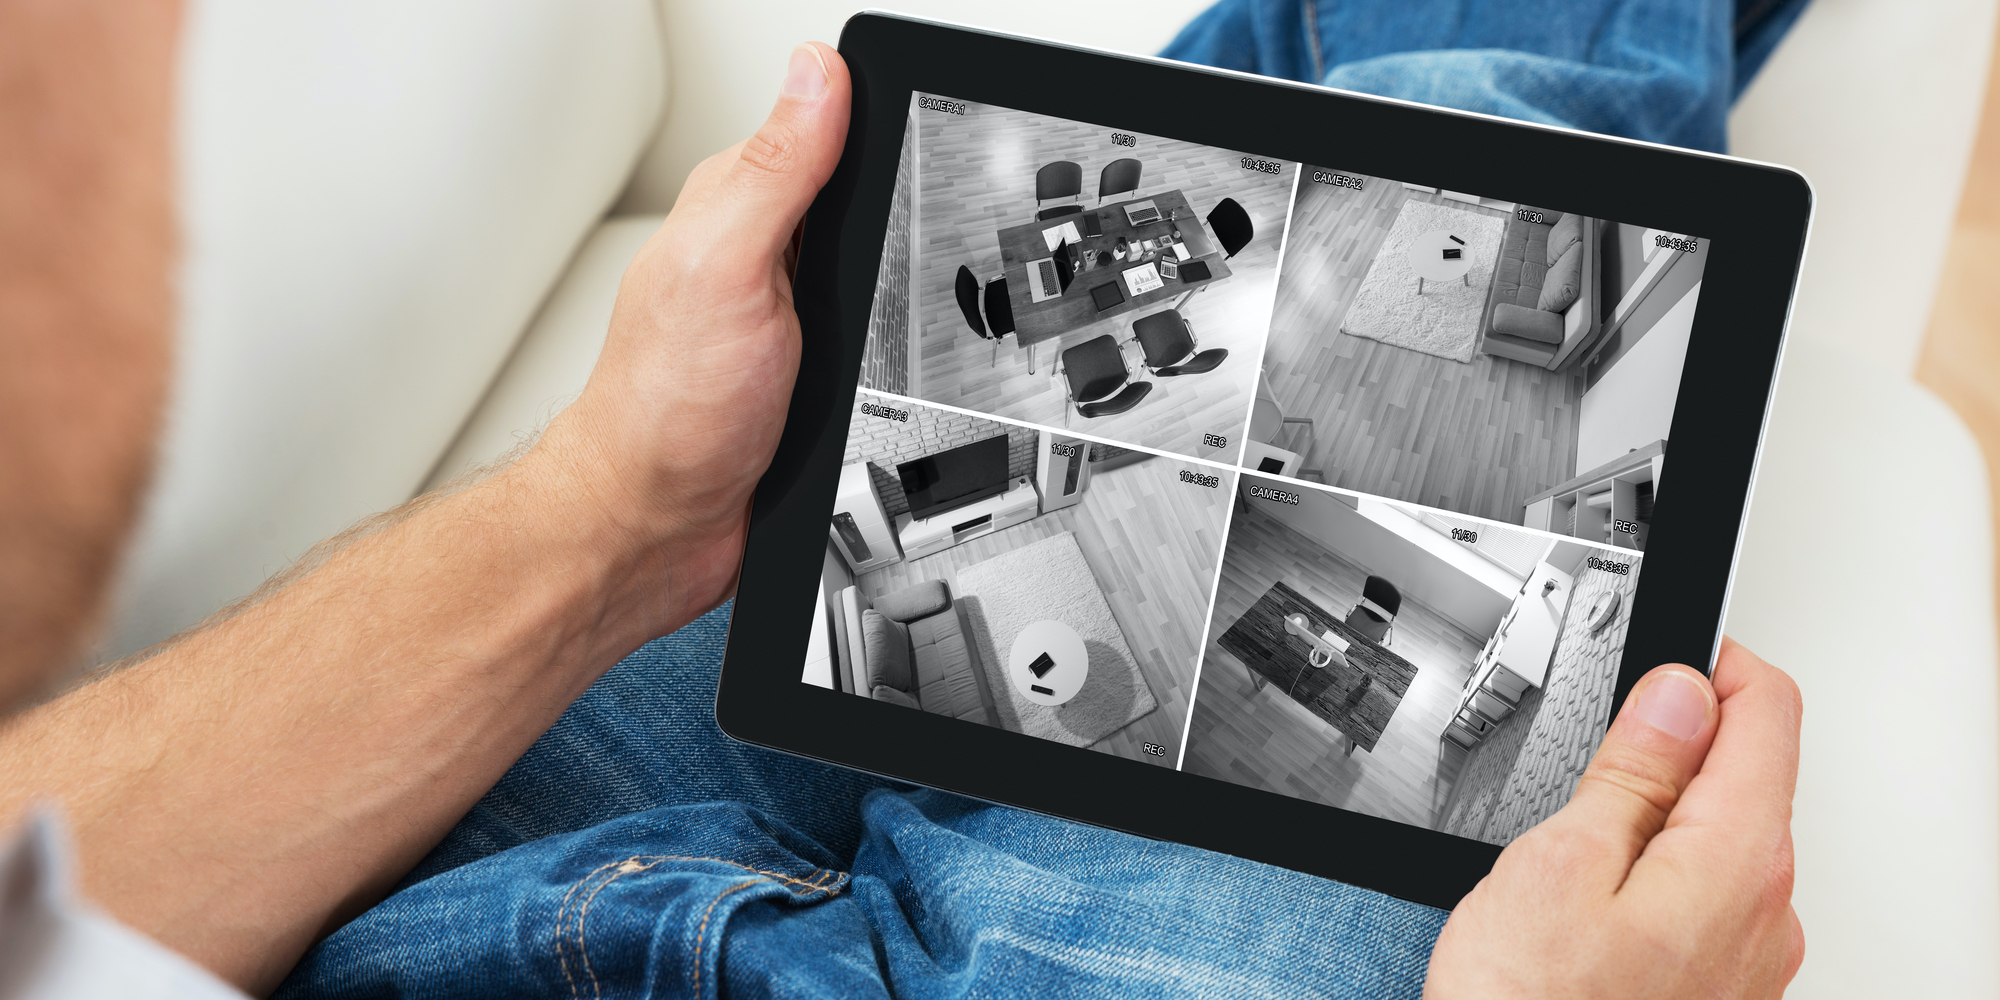 The Top 2 Home Security Camera Installation Locations